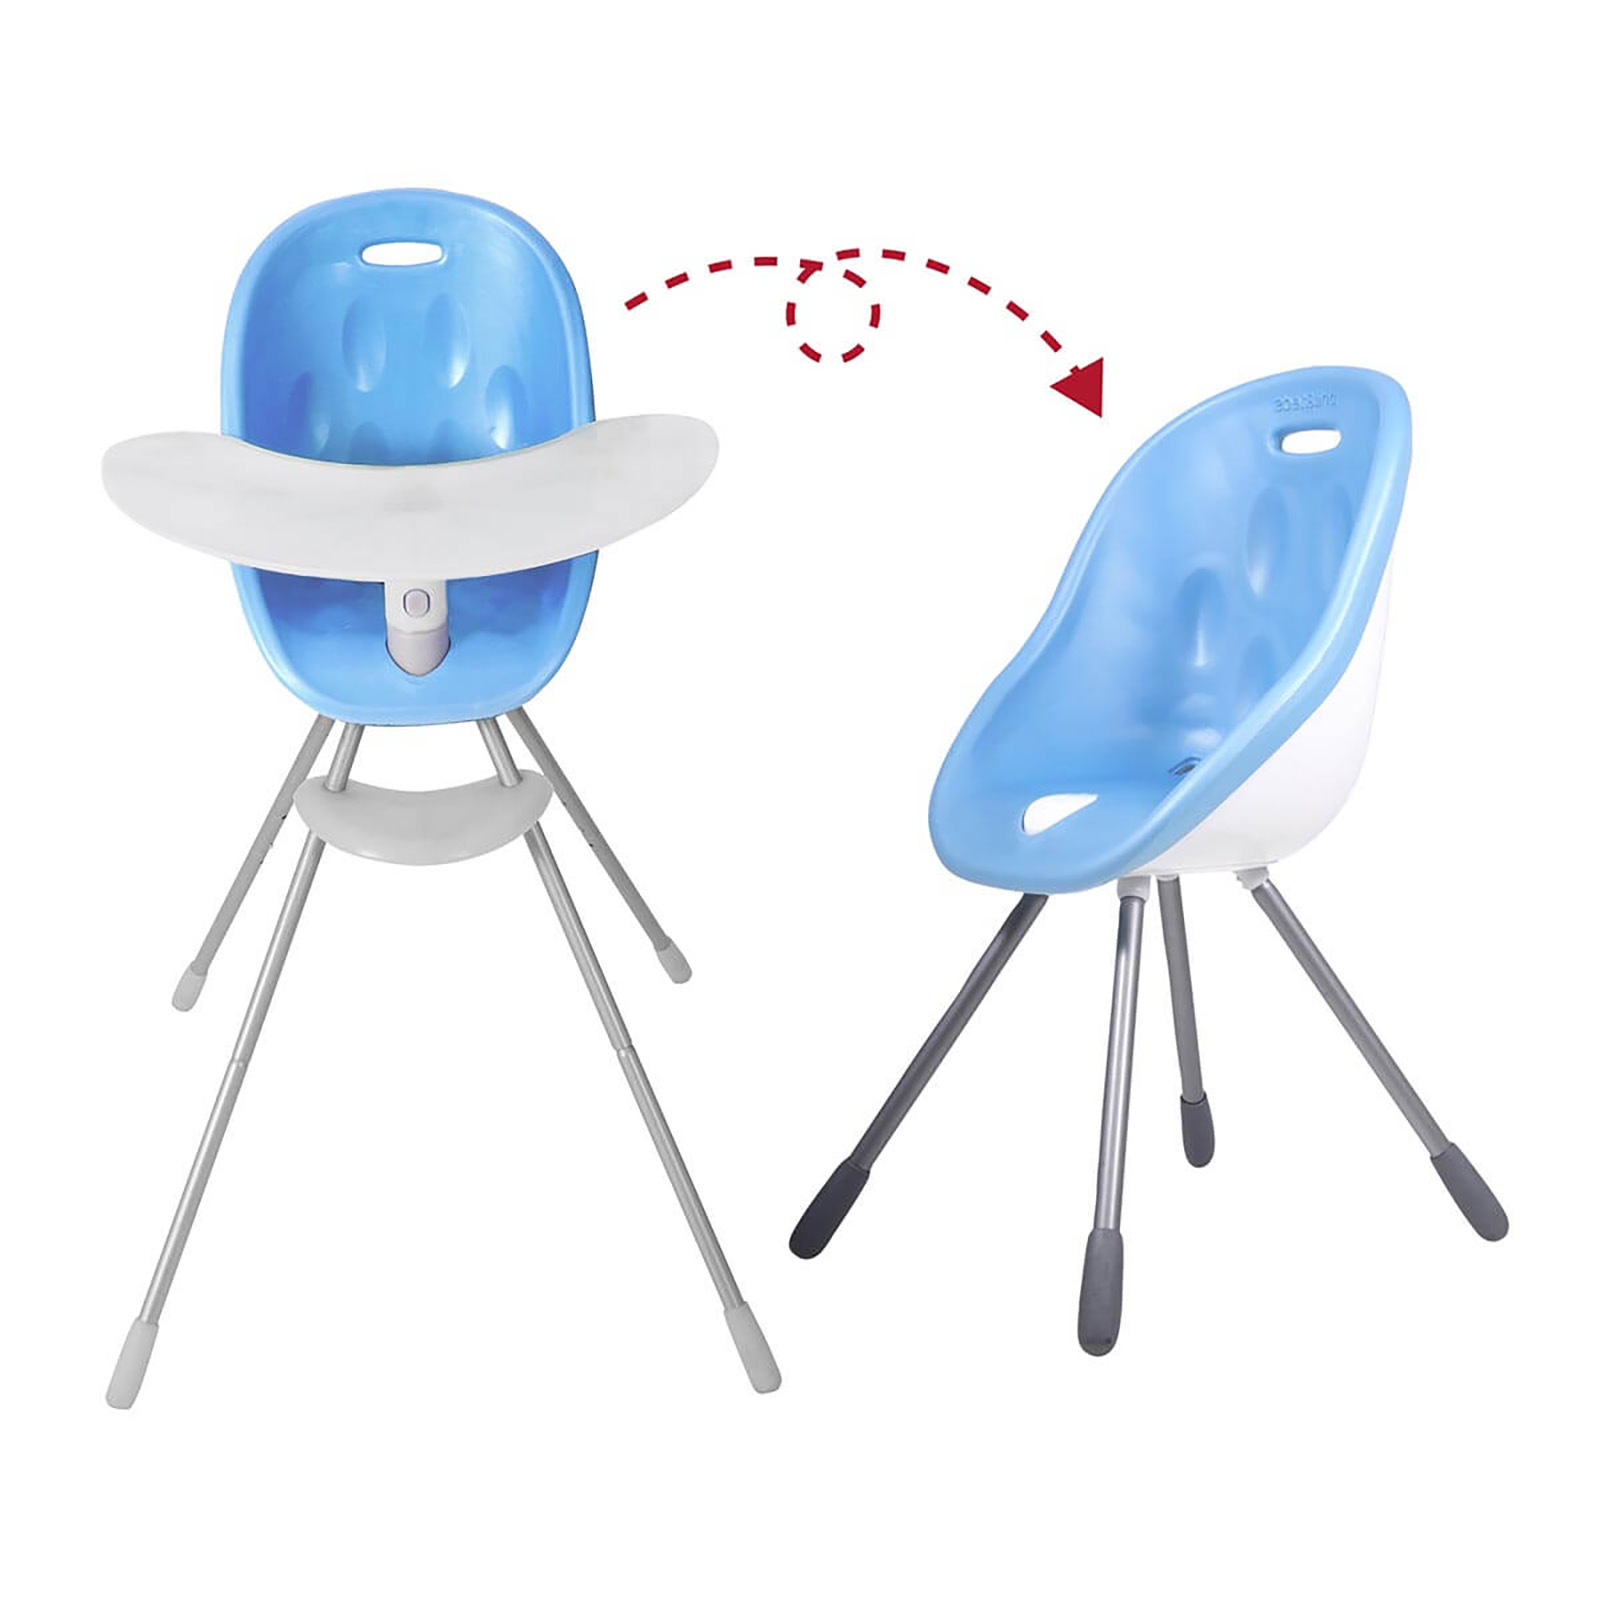 phil and teds poppy chair oviedo leather highchair bubblegum buy at online4baby